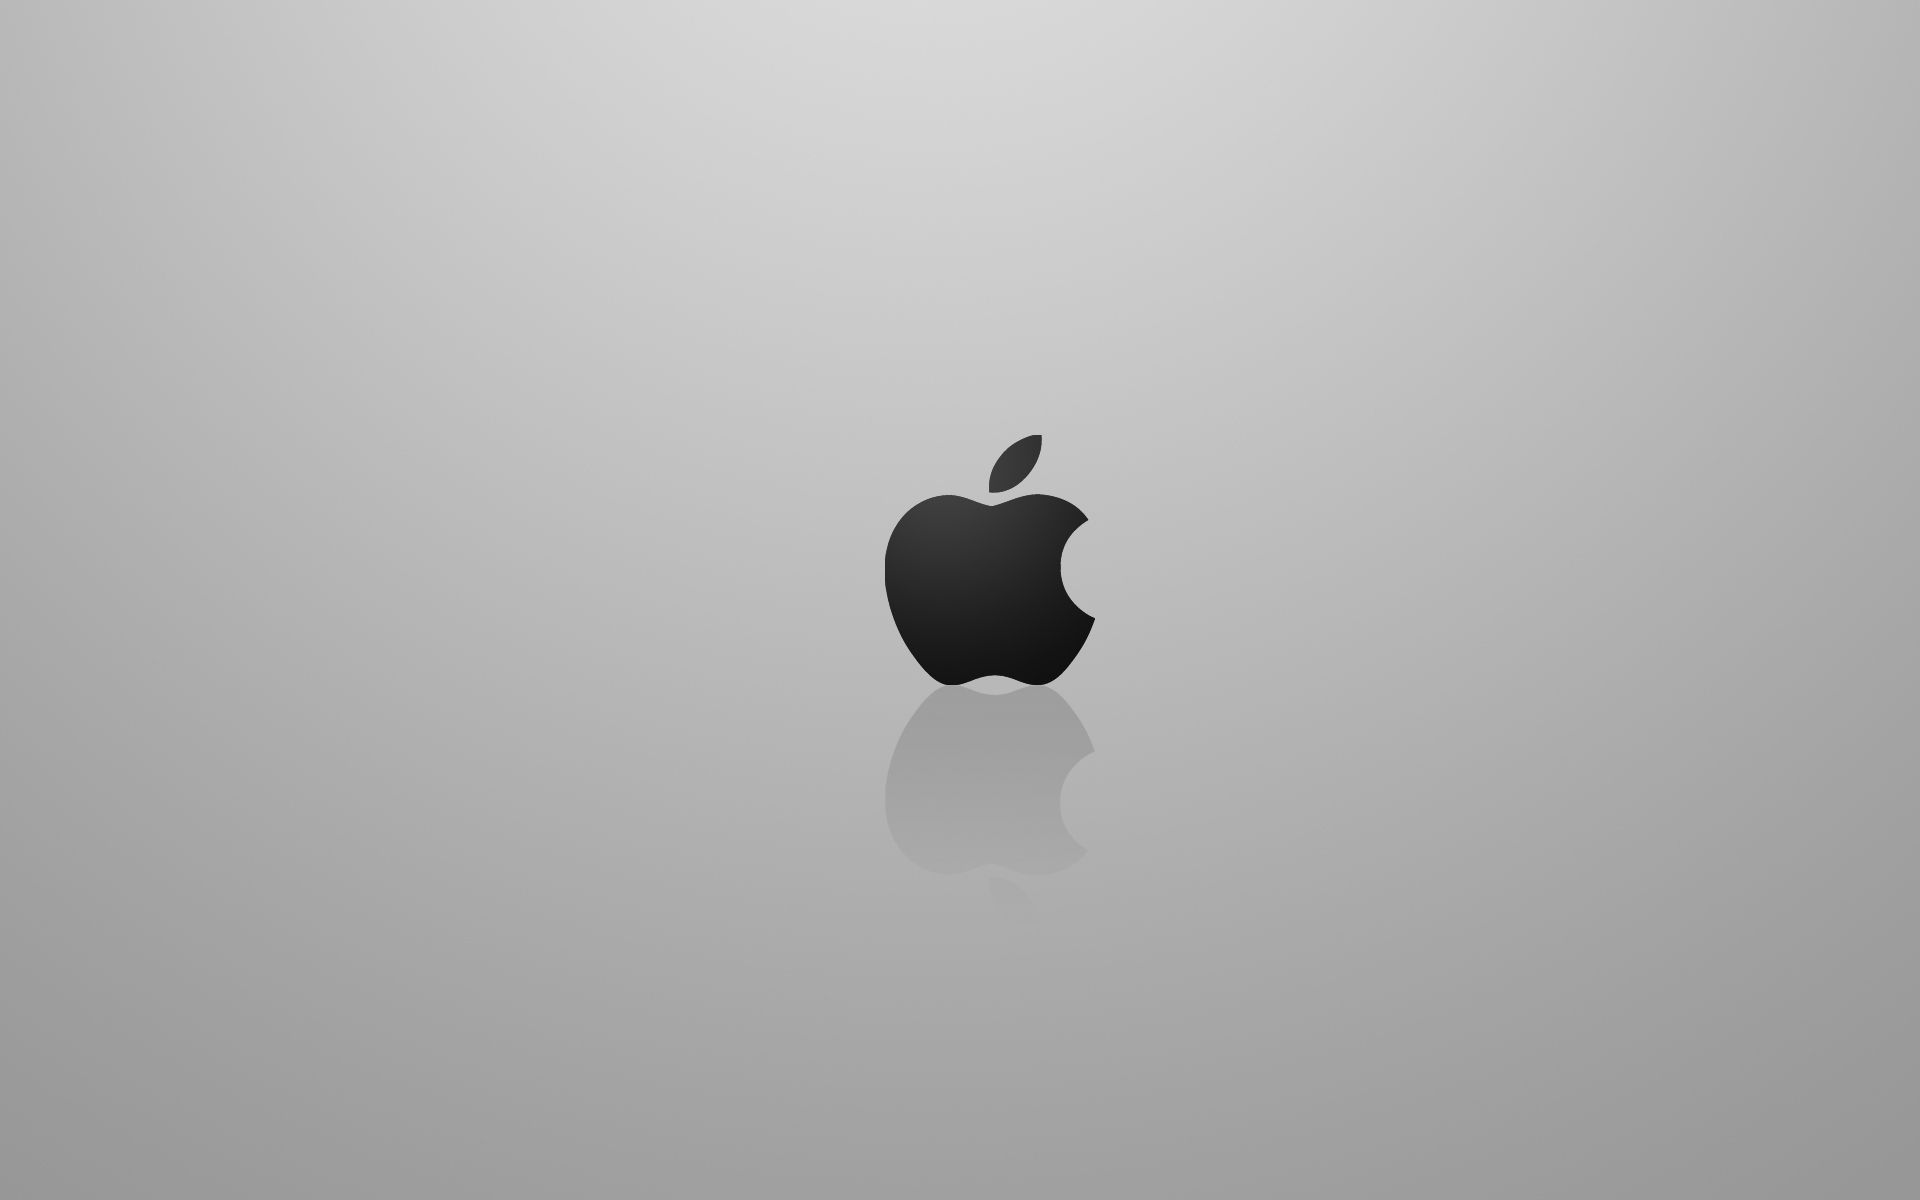 hd apple wallpaper desktop wallpapers system wallpaper × | hd